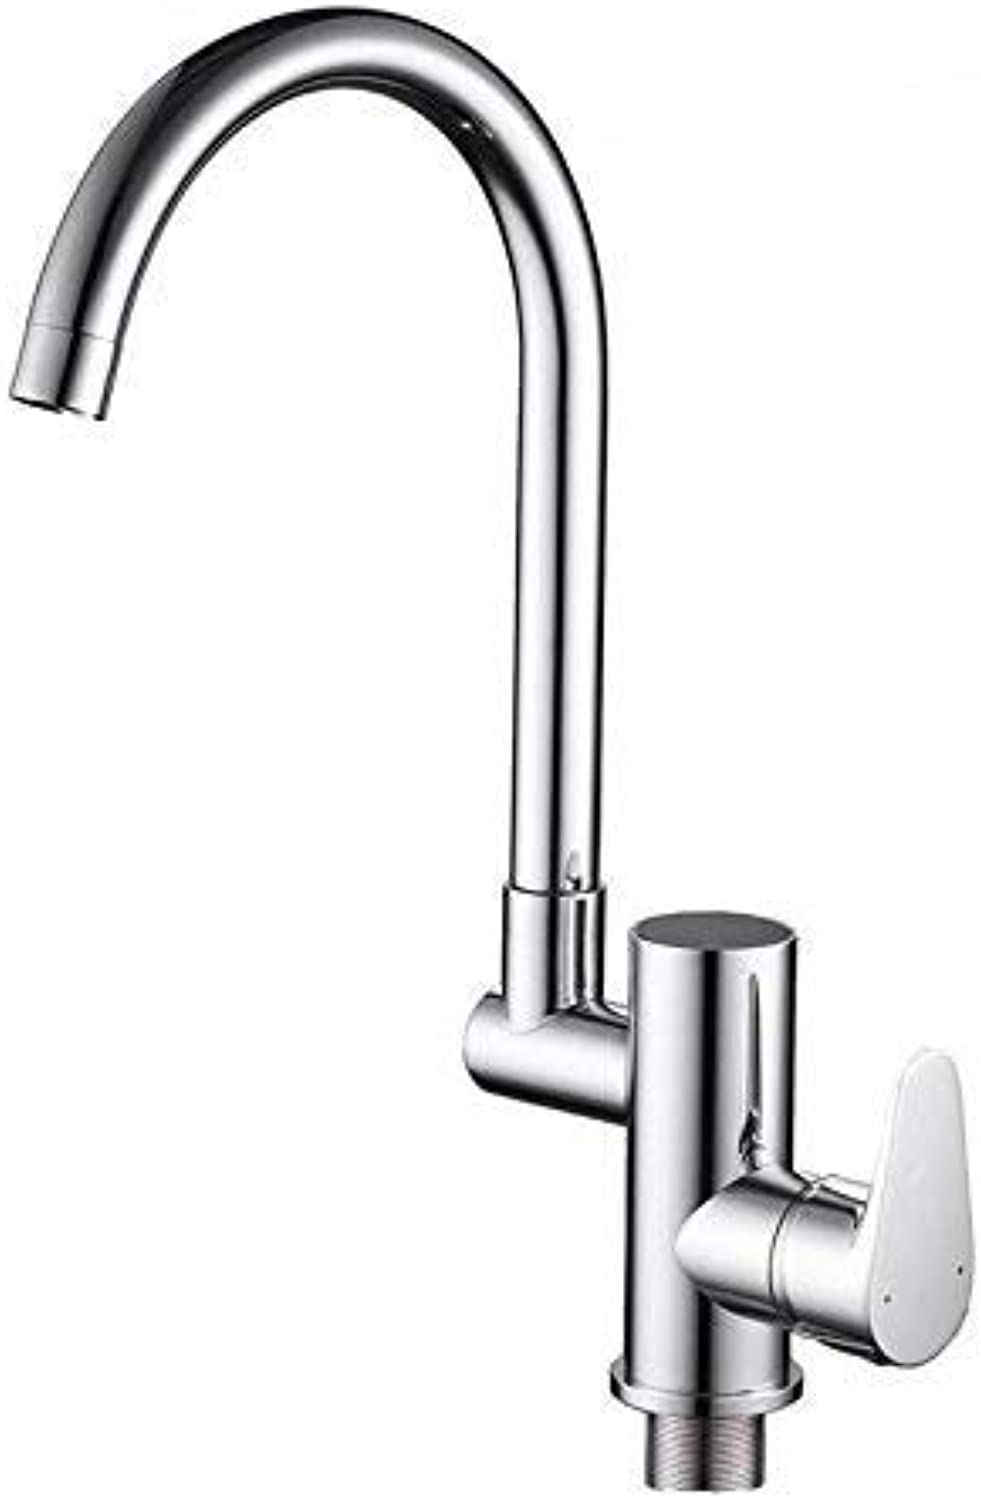 Oudan Taps 360 Swivel Kitchen Faucet Kitchen Faucet Water Power Sink Mixer Brass Chrome Plated Tap Taps (color   -, Size   -)